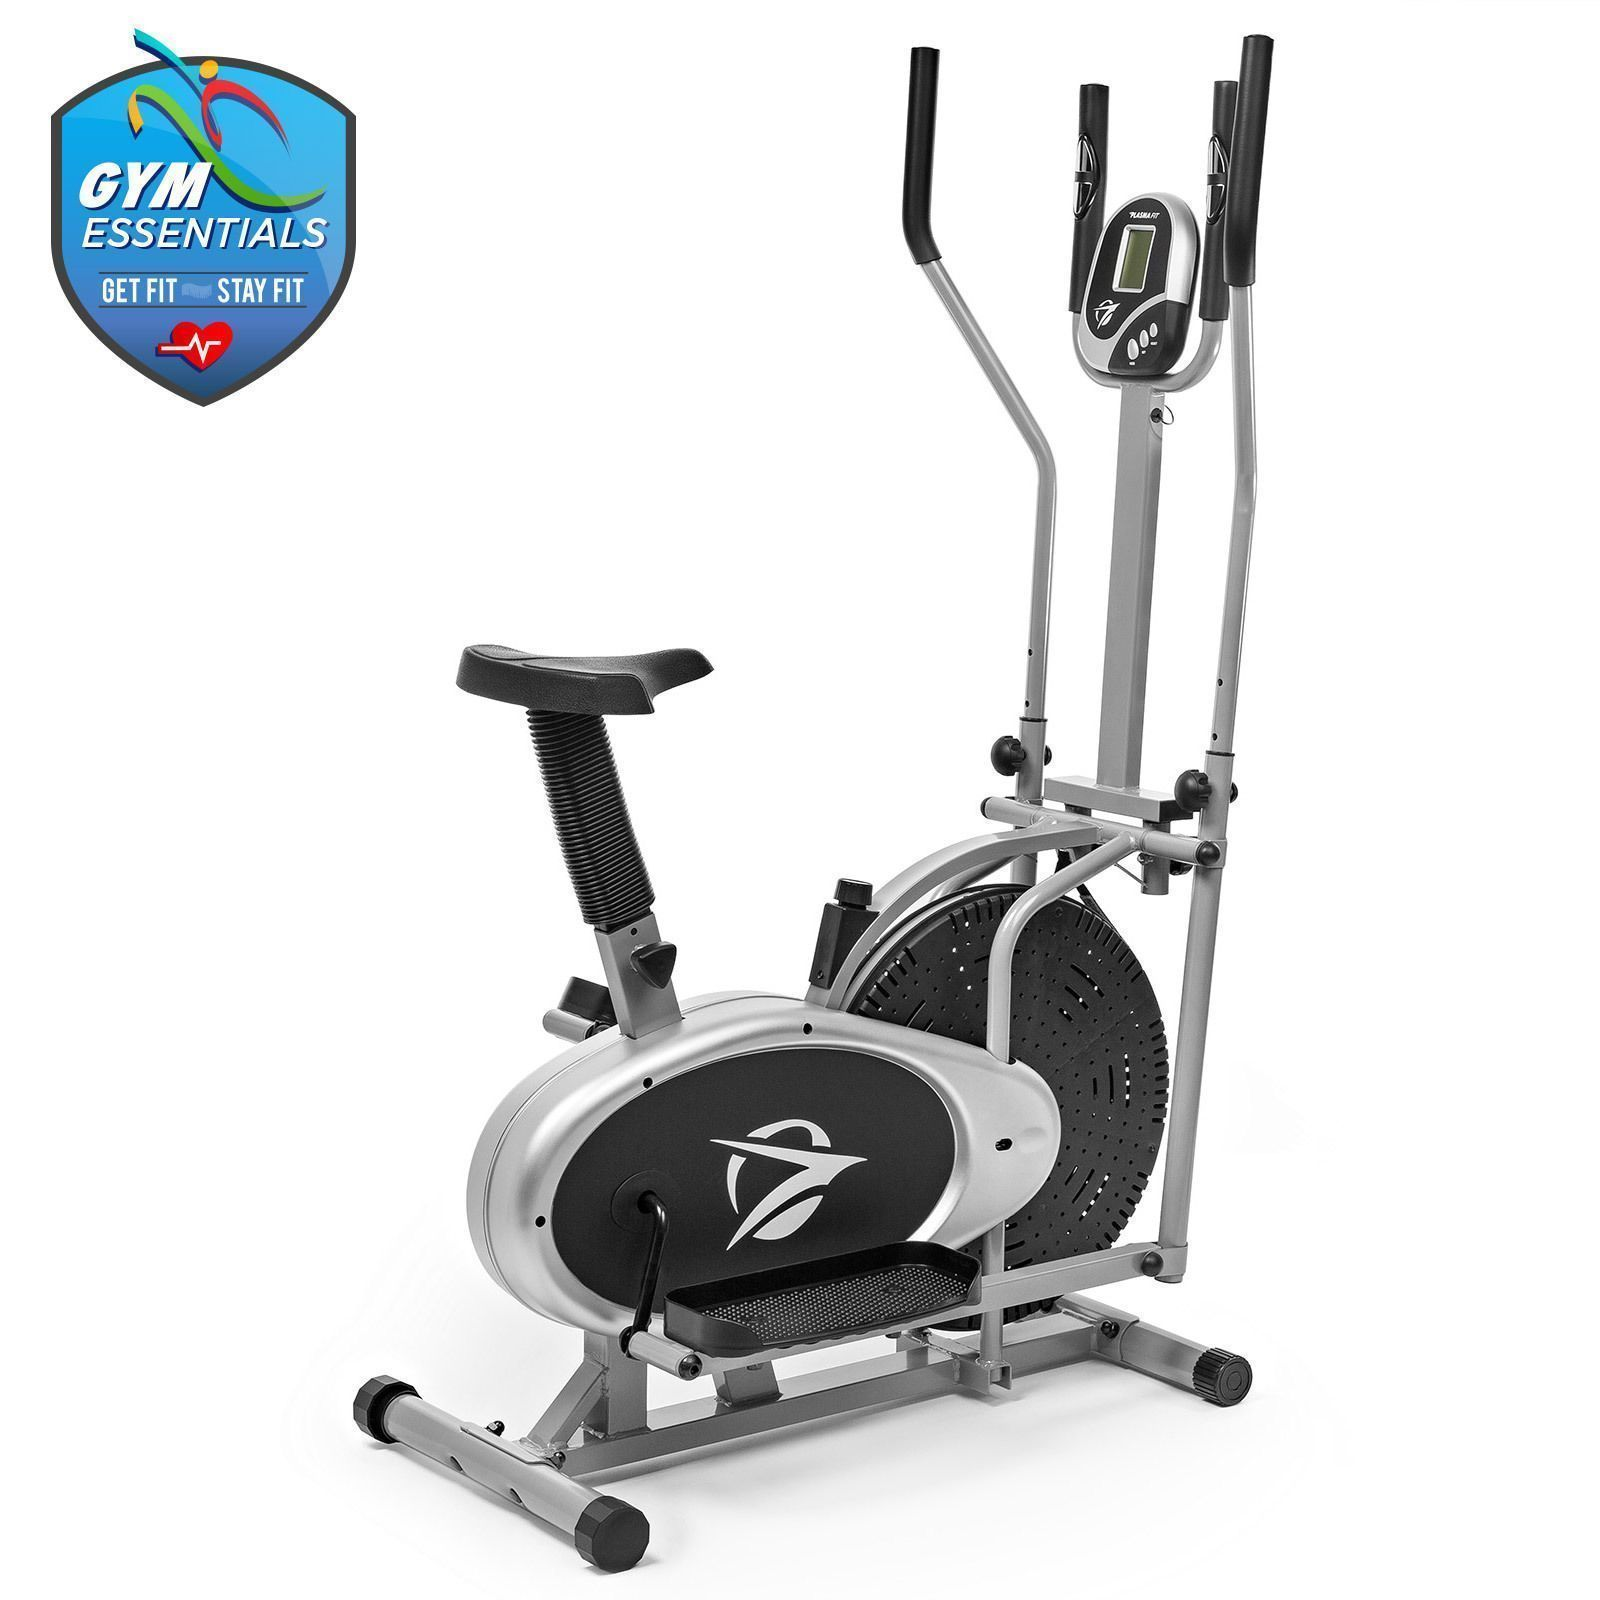 Details About Elliptical Machine Cross Trainer 2 In 1 Exercise